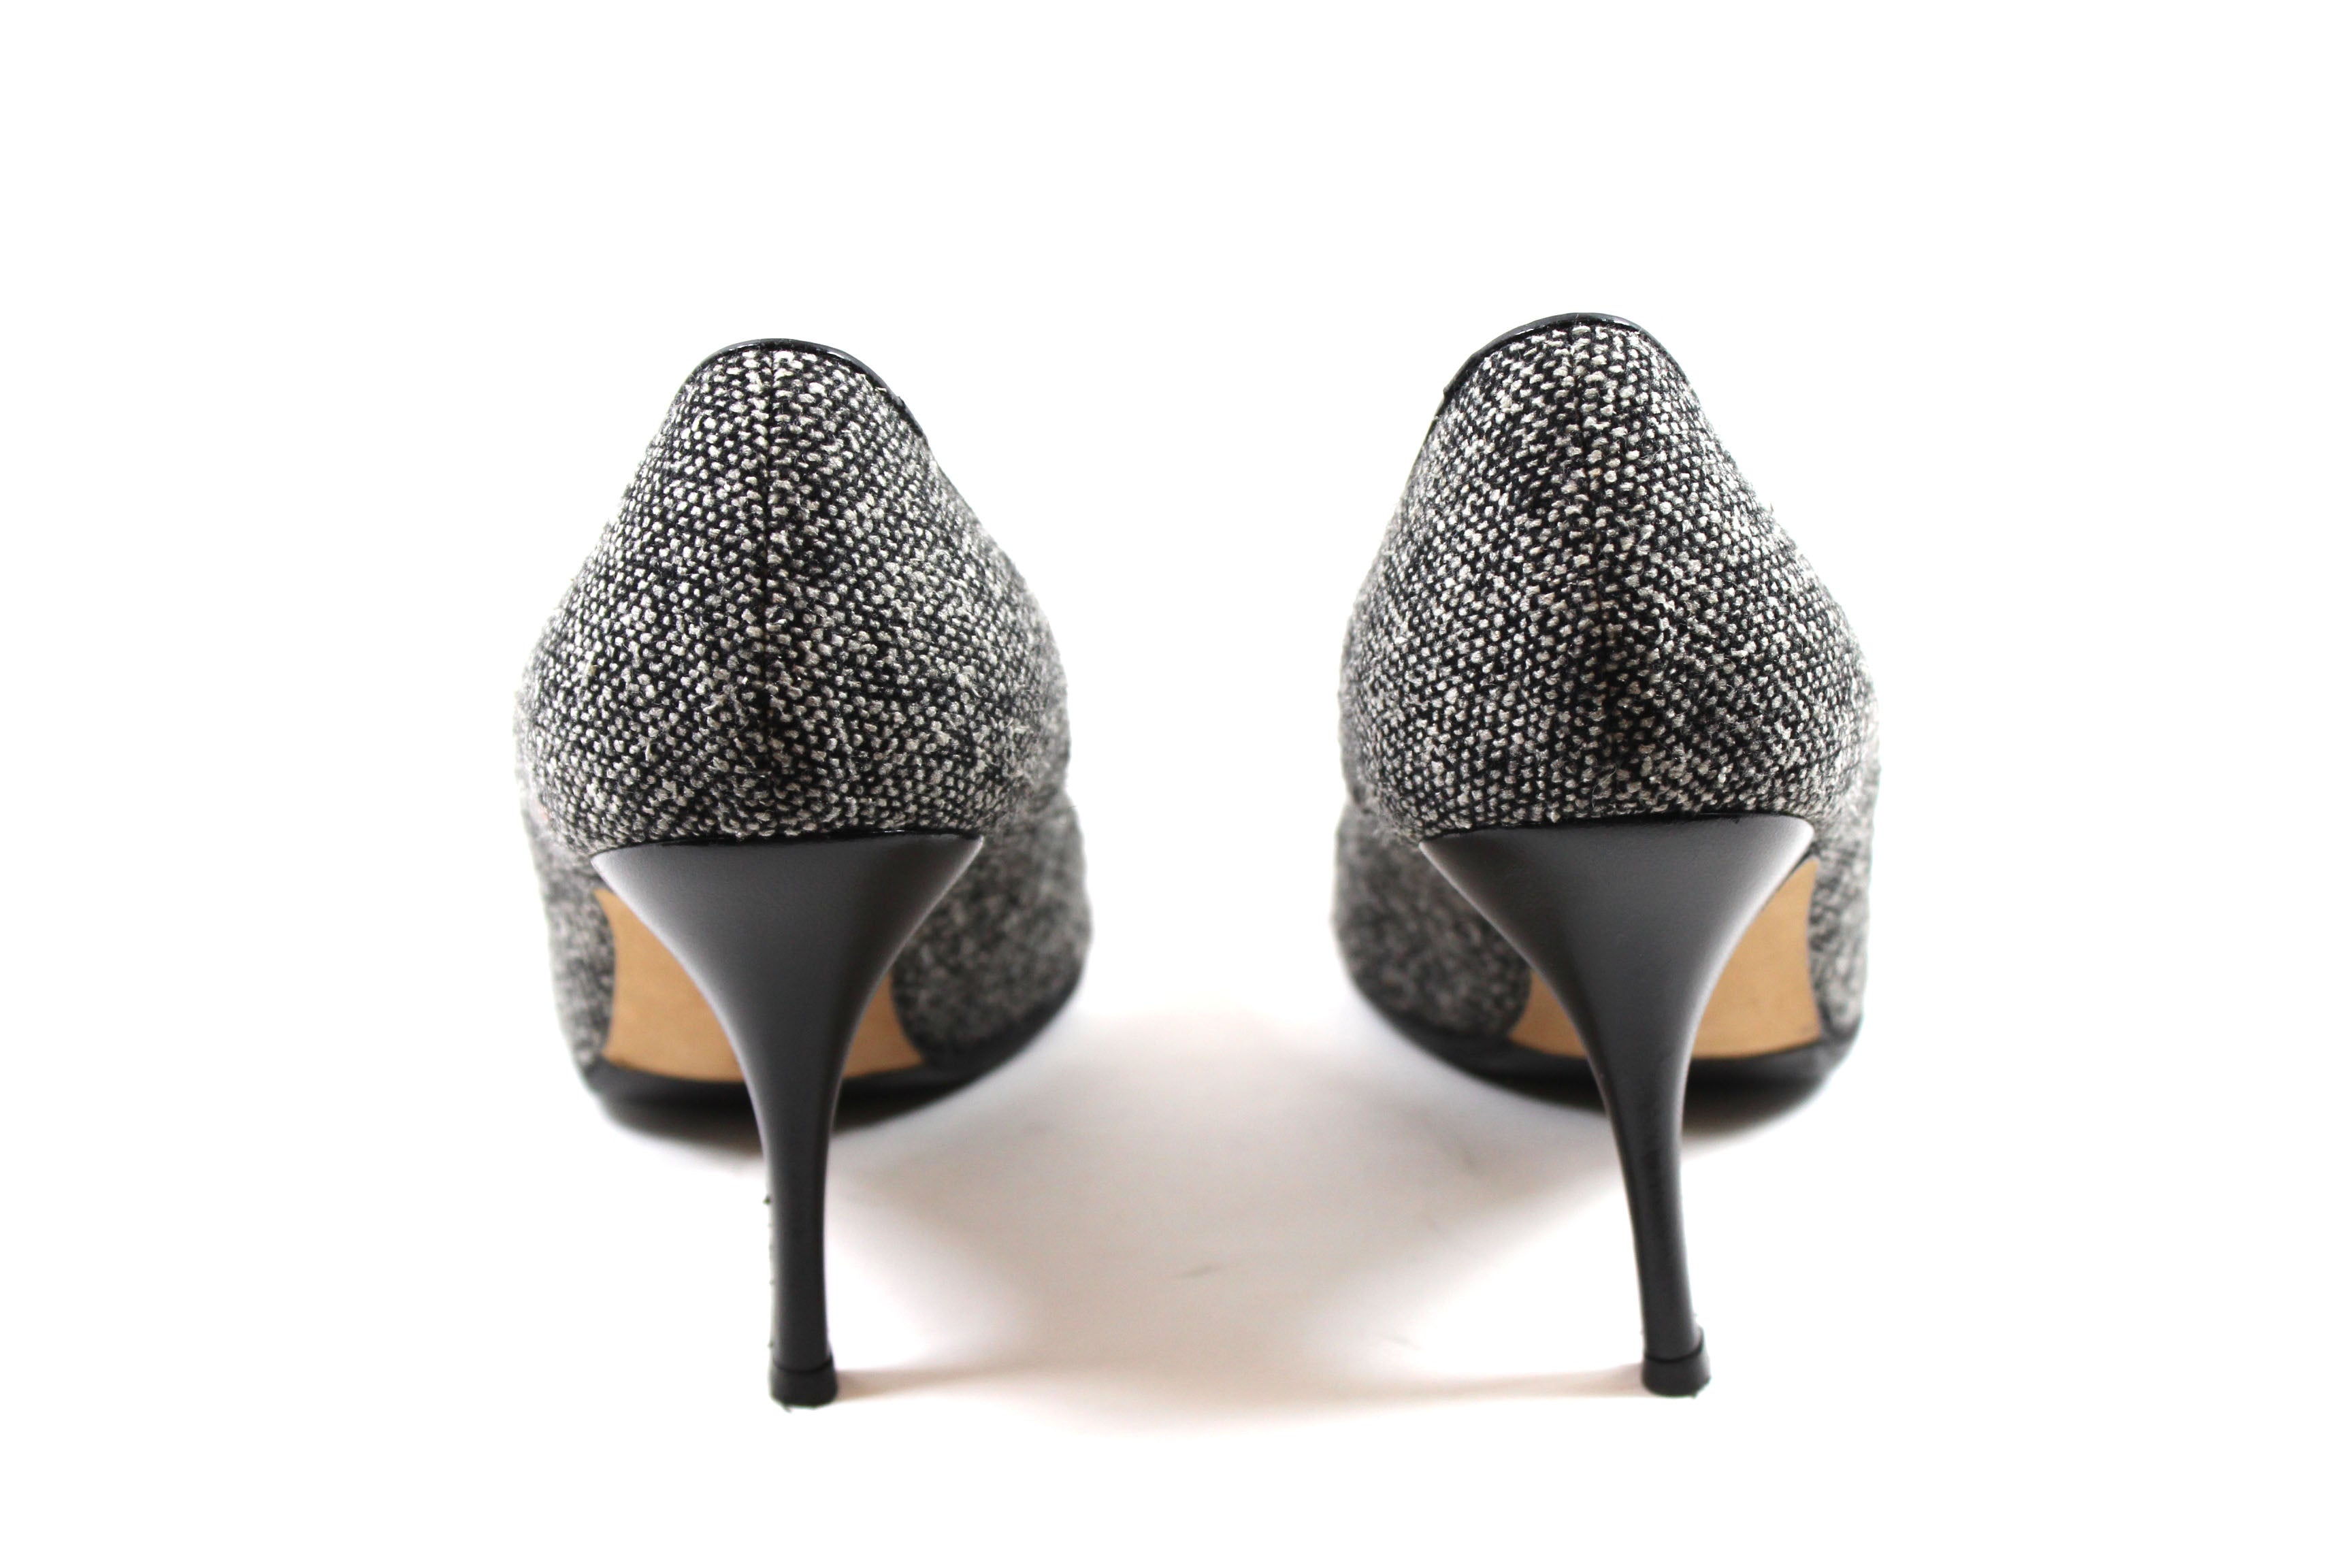 Manolo Blahnik Monochrome Tweed Pumps (Size 37)